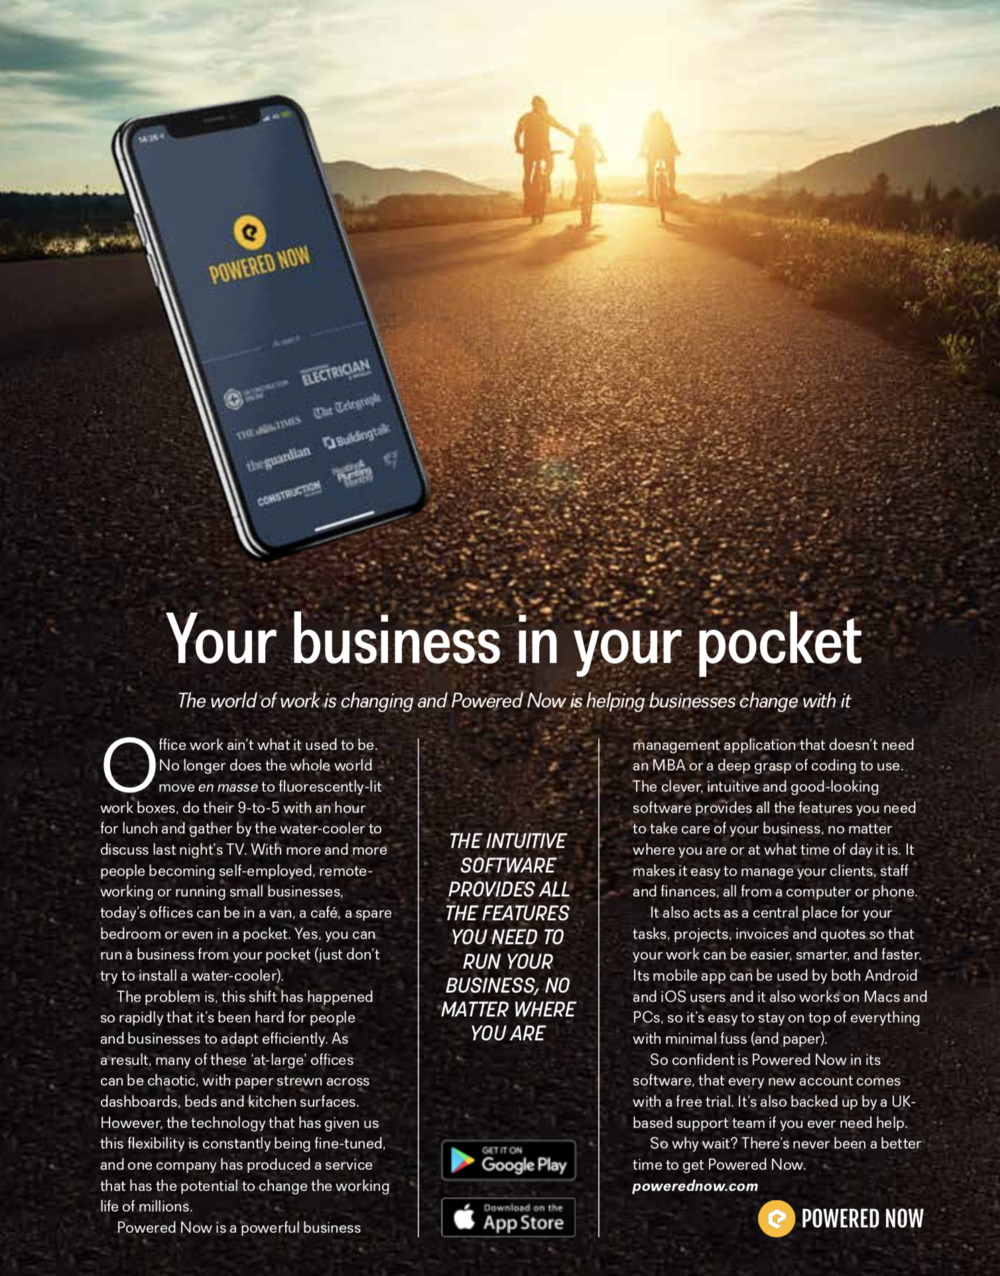 Your business in your pocket - The world of working is changing and Powered Now is helping businesses change with it